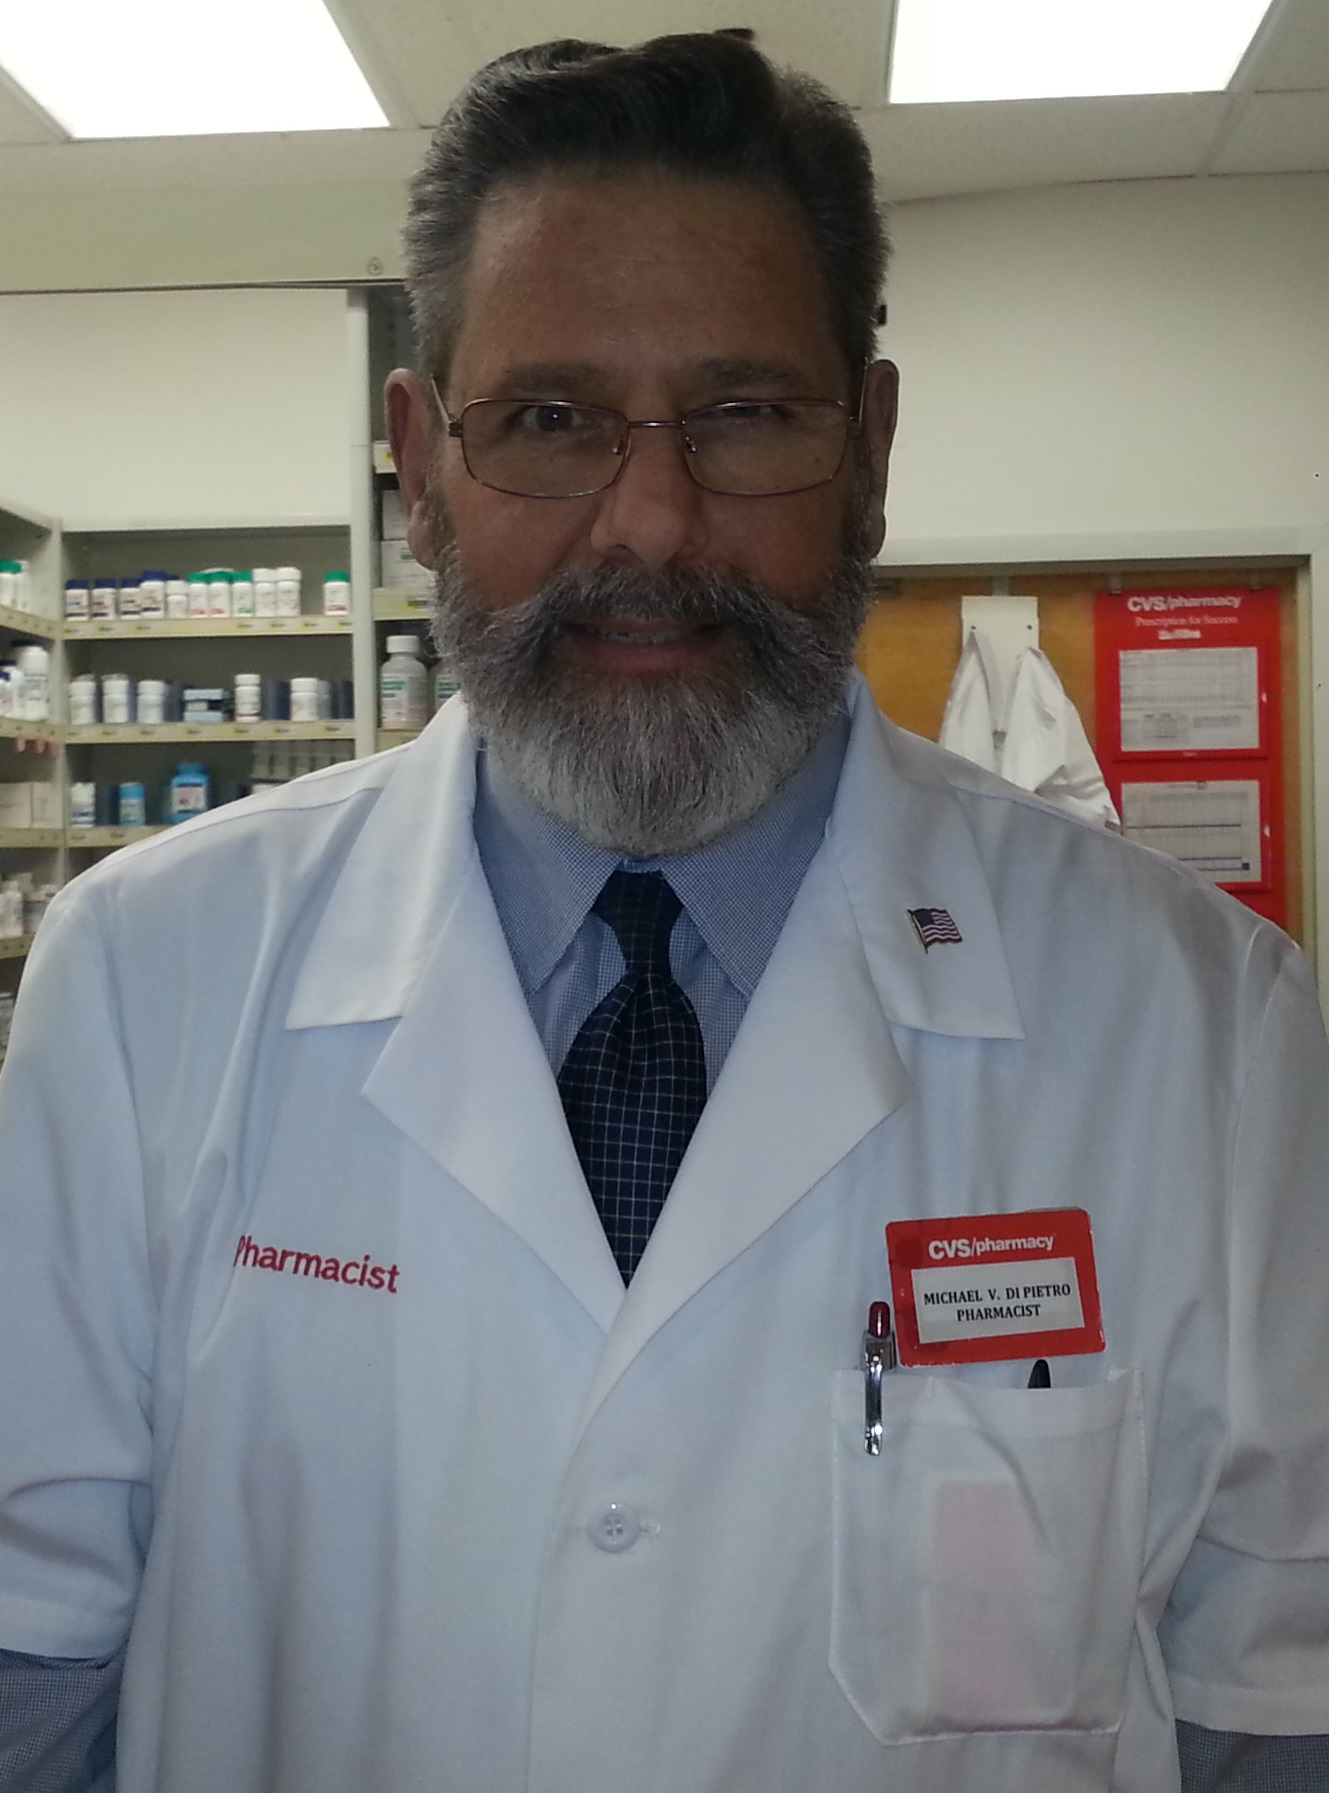 pharmacist of the week - michael v dipietro